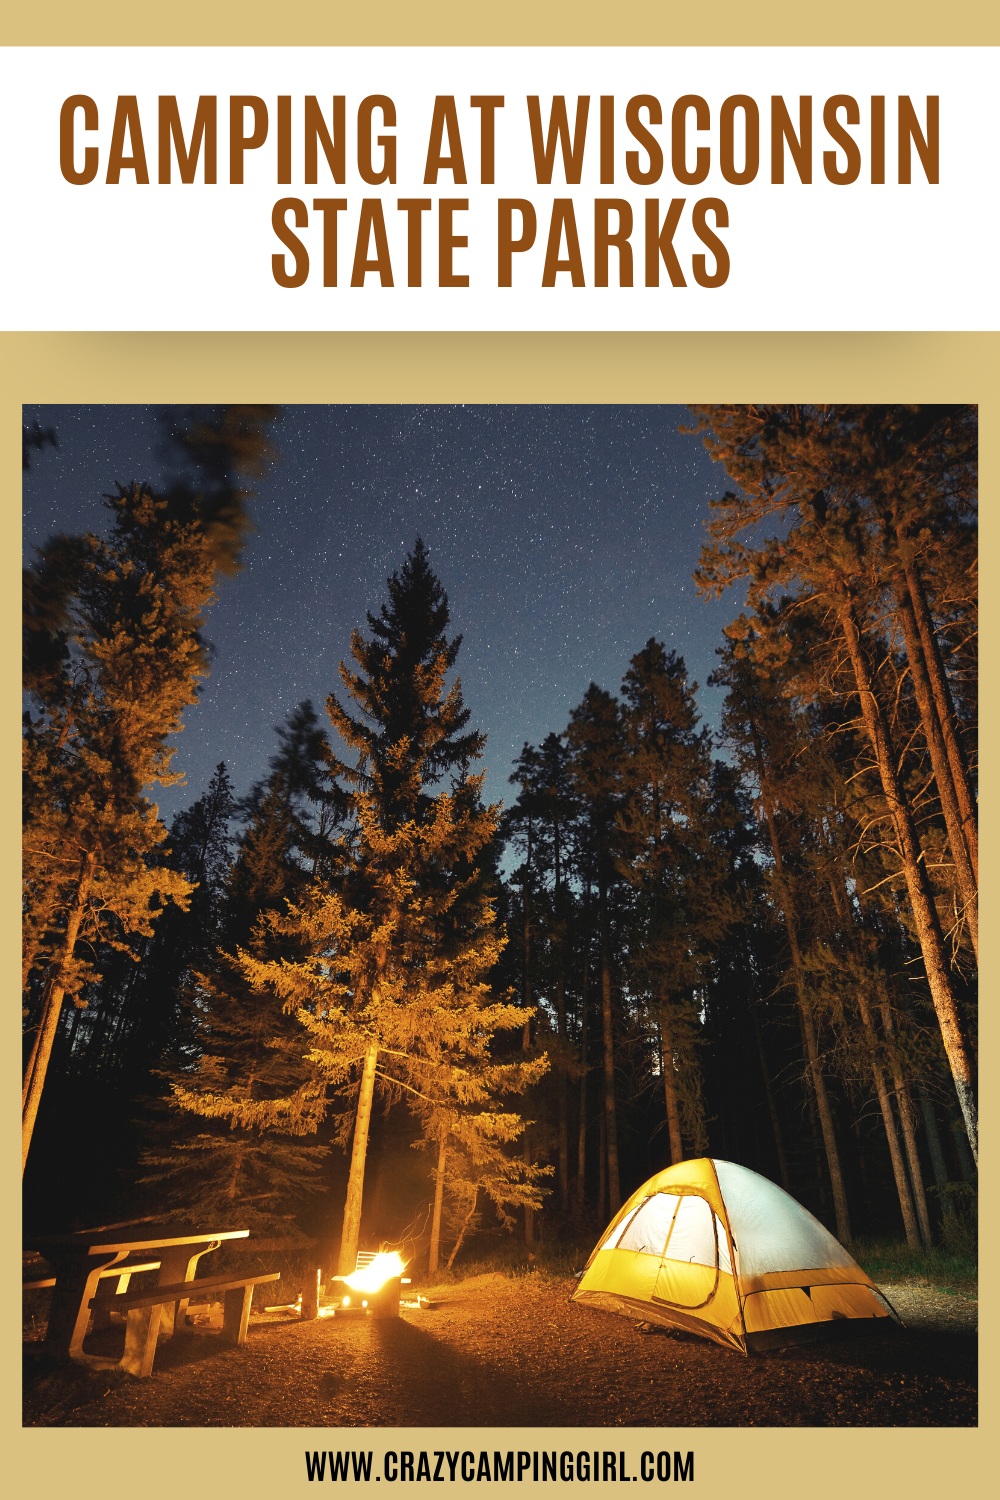 Camping at Wisconsin State Parks: Discover the Unexpected Joys of Camping